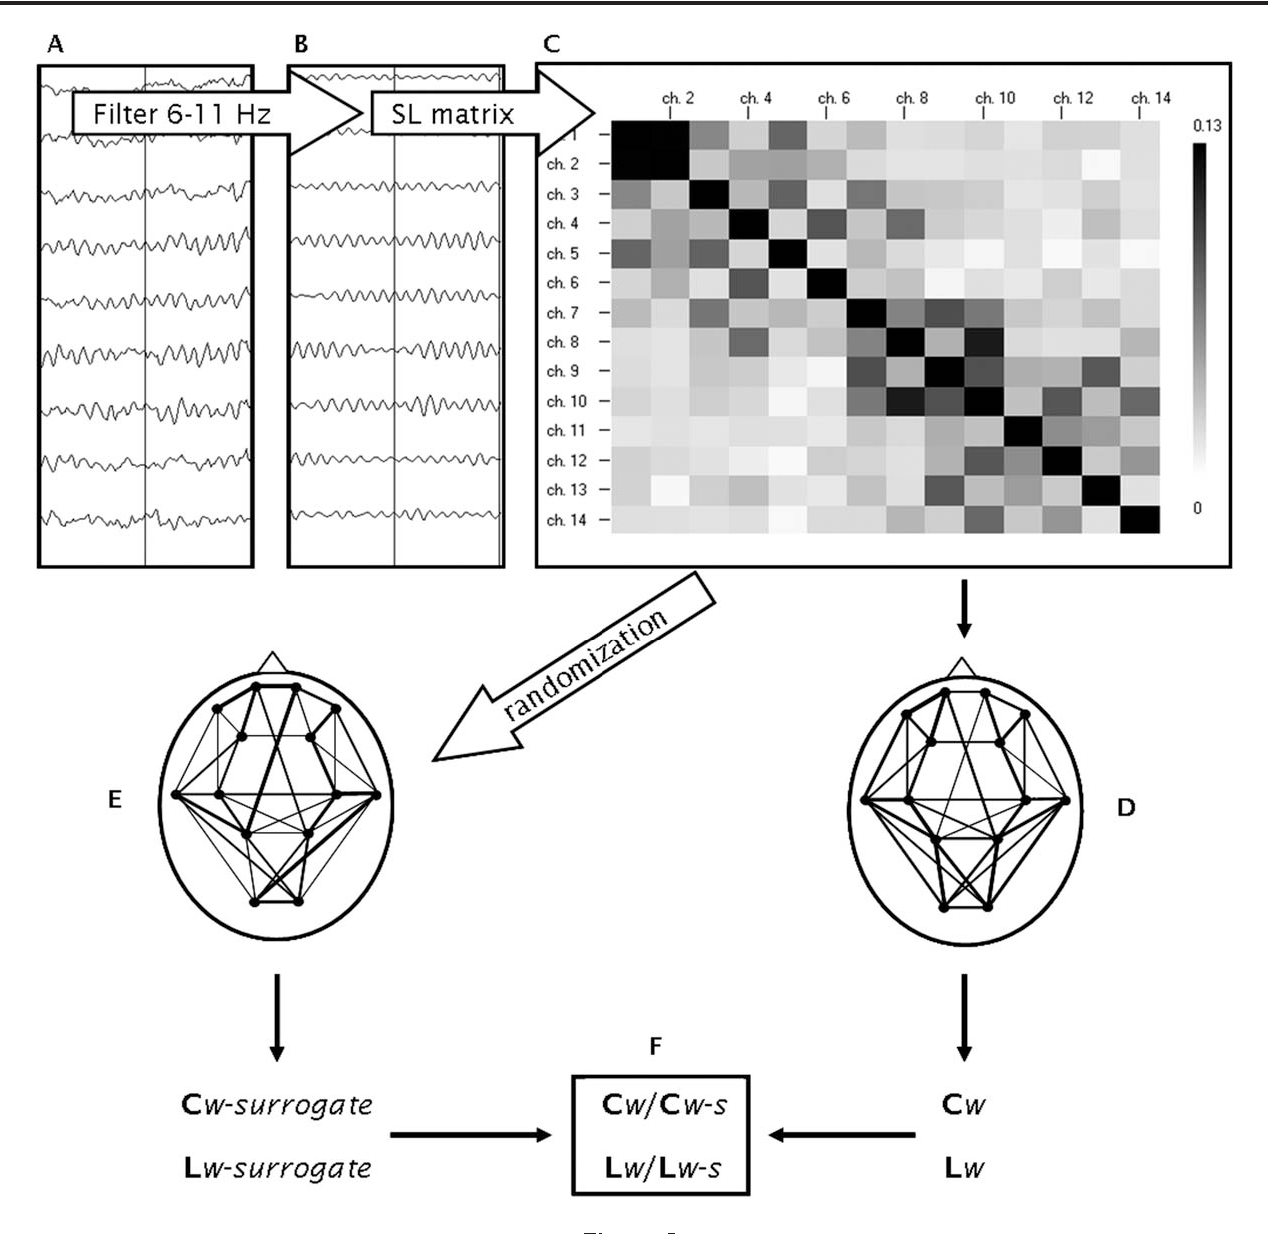 Network Analysis Of Resting State Eeg In The Developing Young Brain Jay Cees Site Diagram Eye Structure Comes With Maturation Semantic Scholar